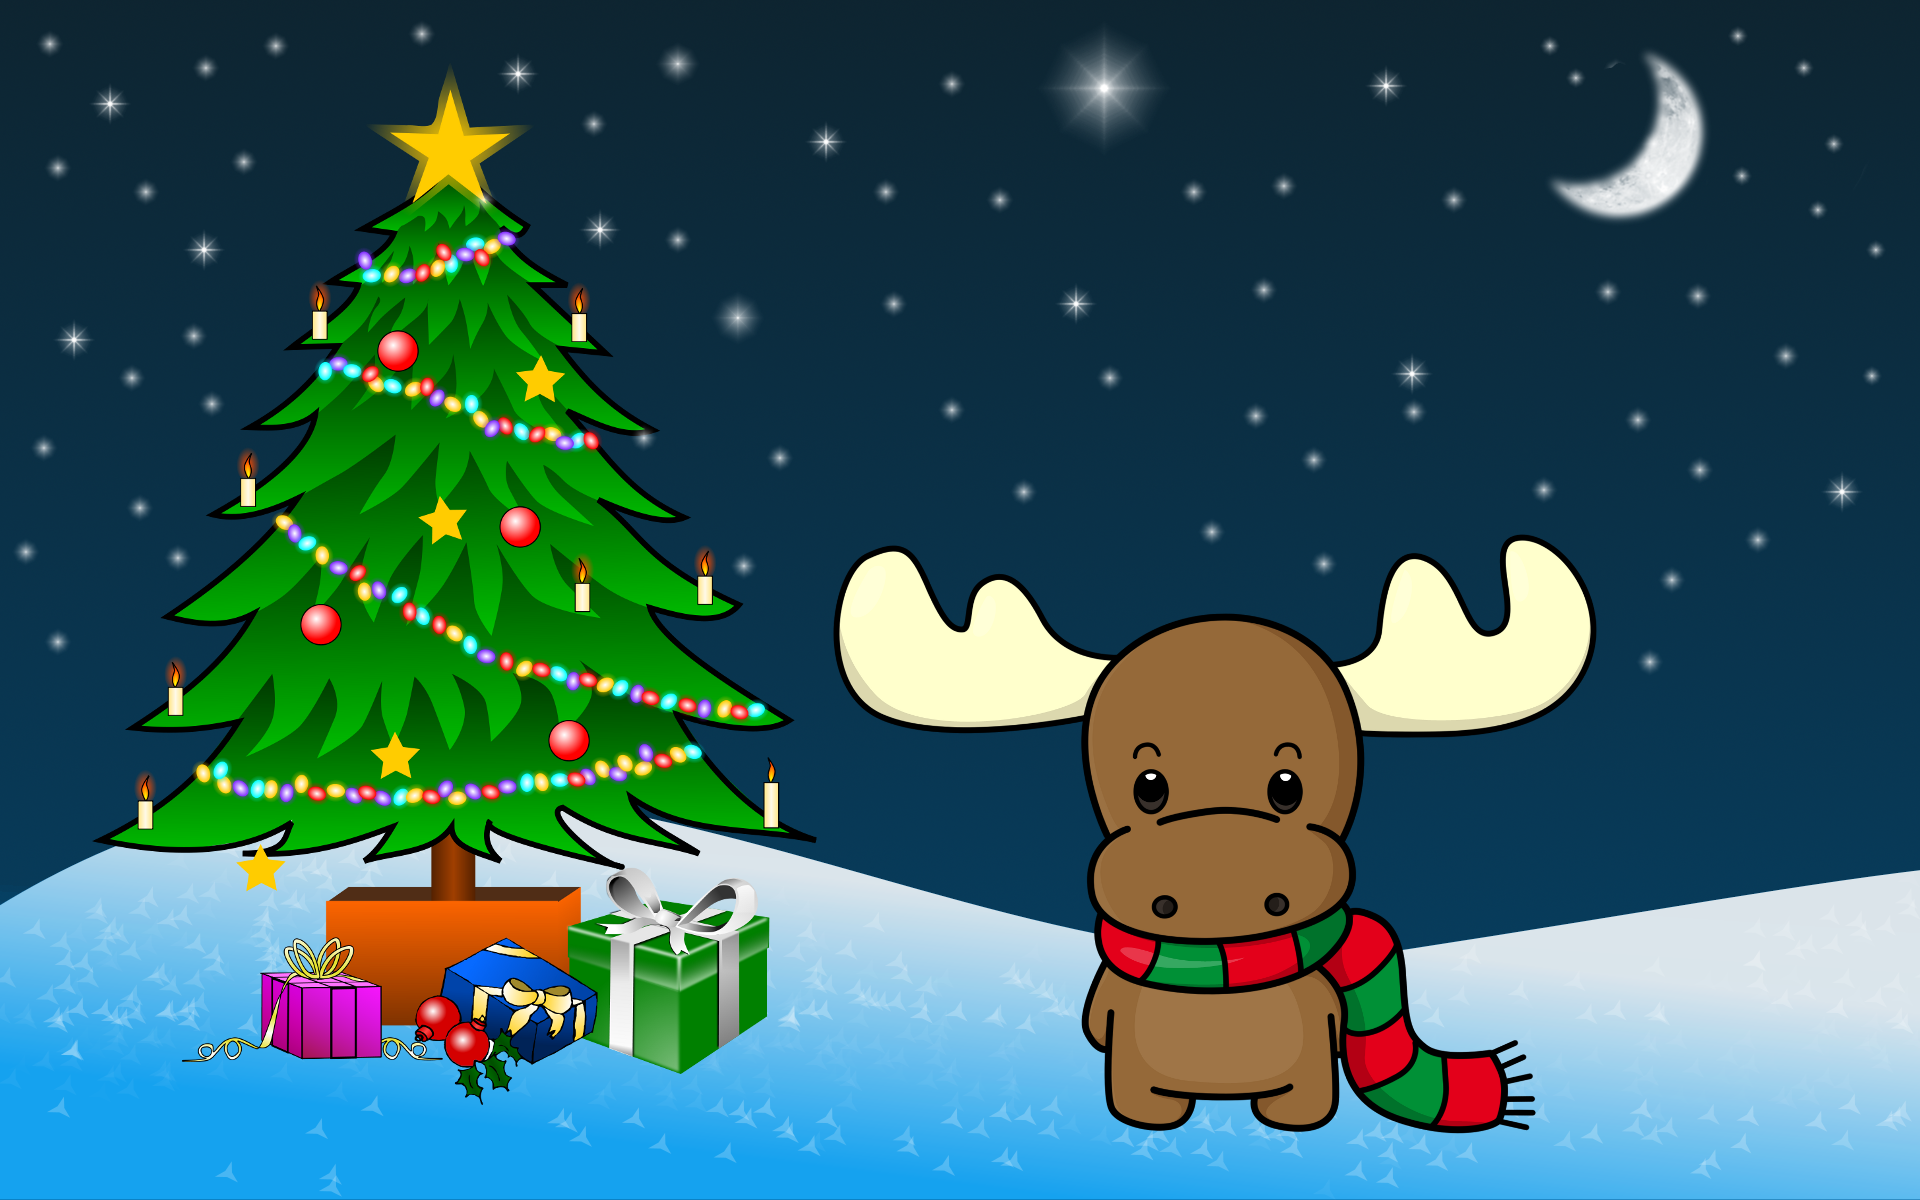 Free Download As Your Wallpaper Each Of The Collections Of Christmas Wallpaper 1920x1200 For Your Desktop Mobile Tablet Explore 78 Cute Christmas Wallpapers Cute Christmas Wallpapers And Screensavers Free